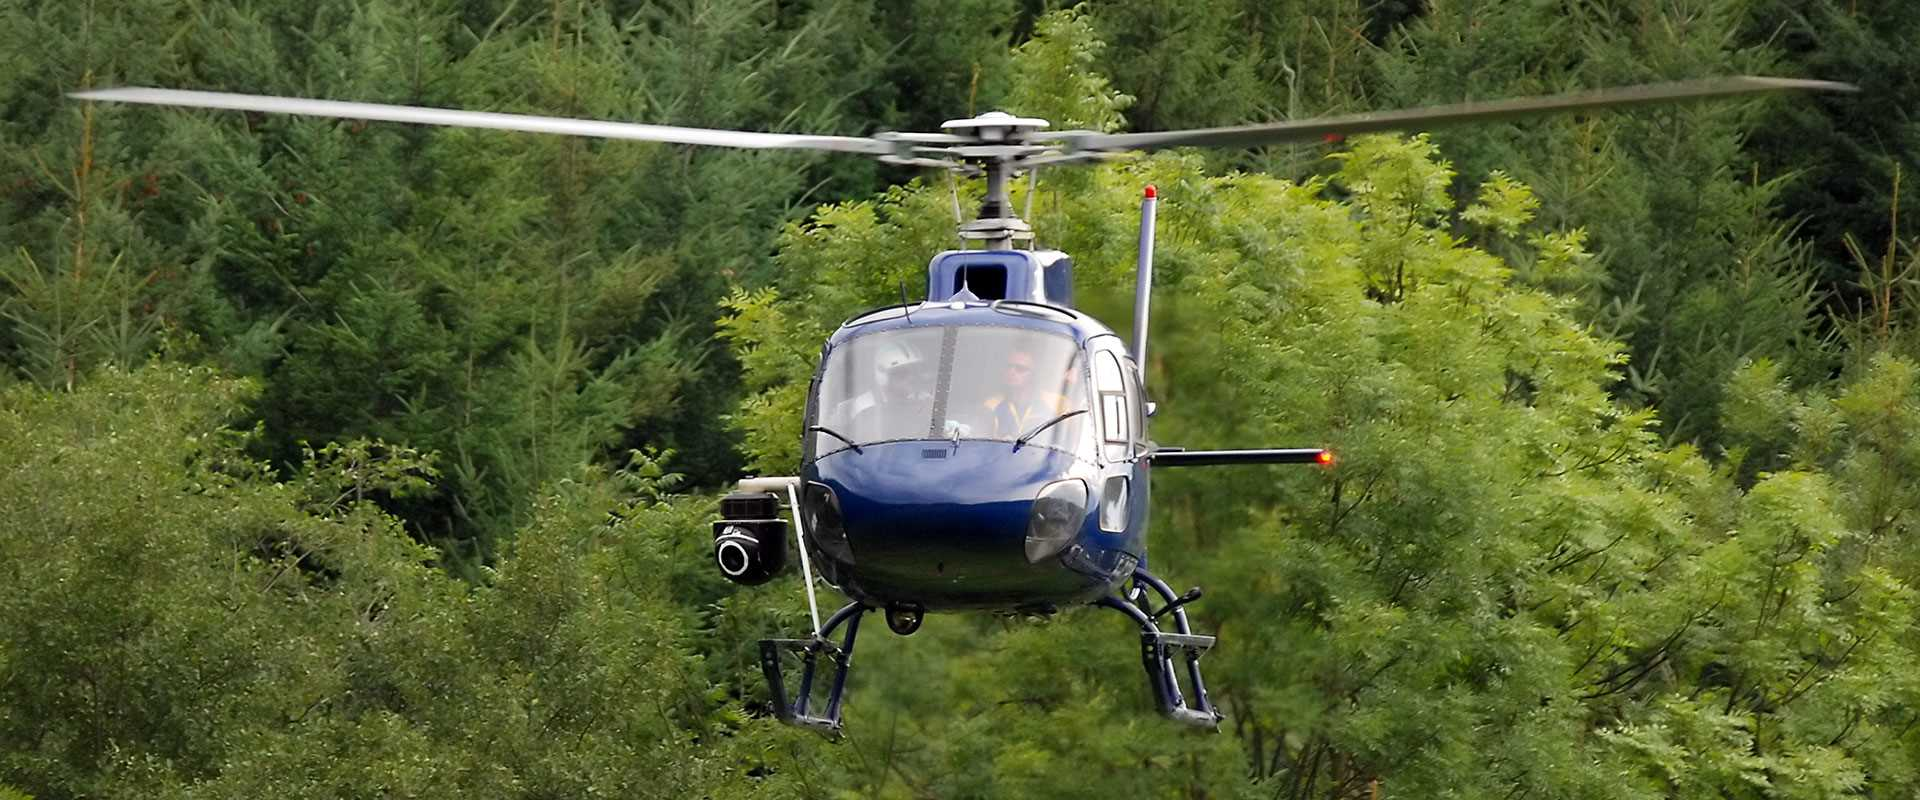 Helicopter Videography & Photography